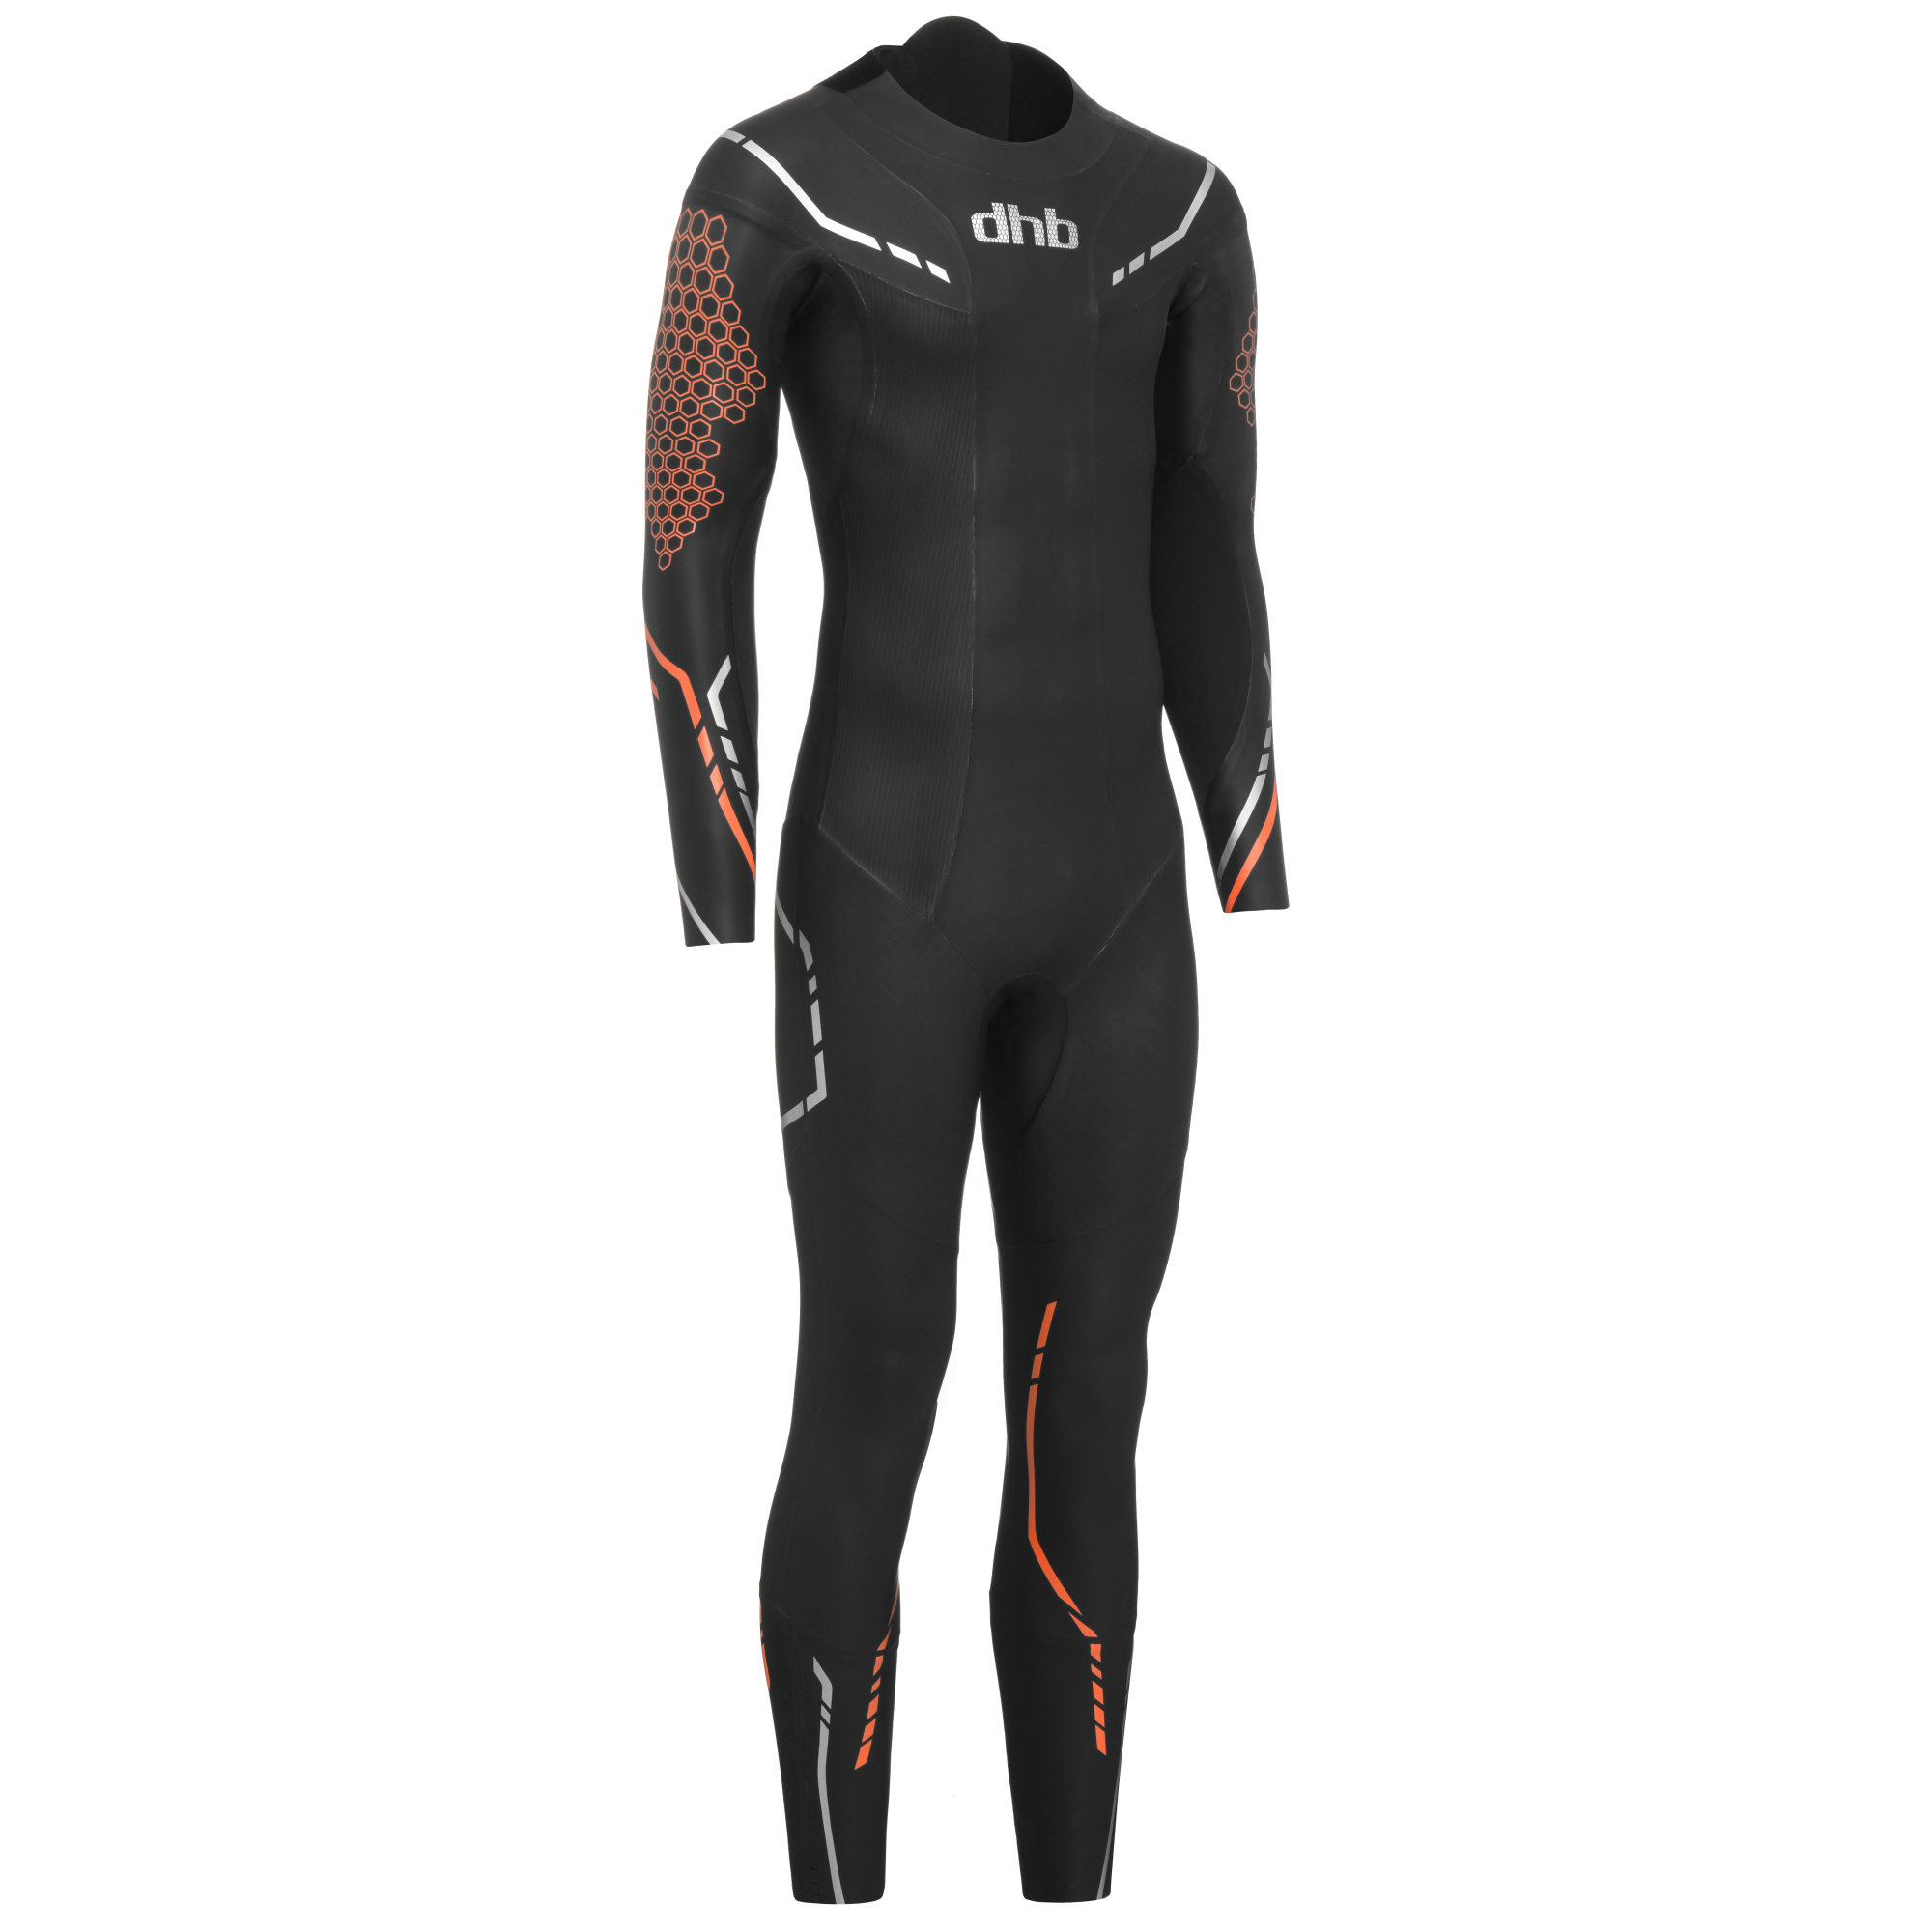 dhb Aeron Lab Wetsuit Men - Black | Swim equipment